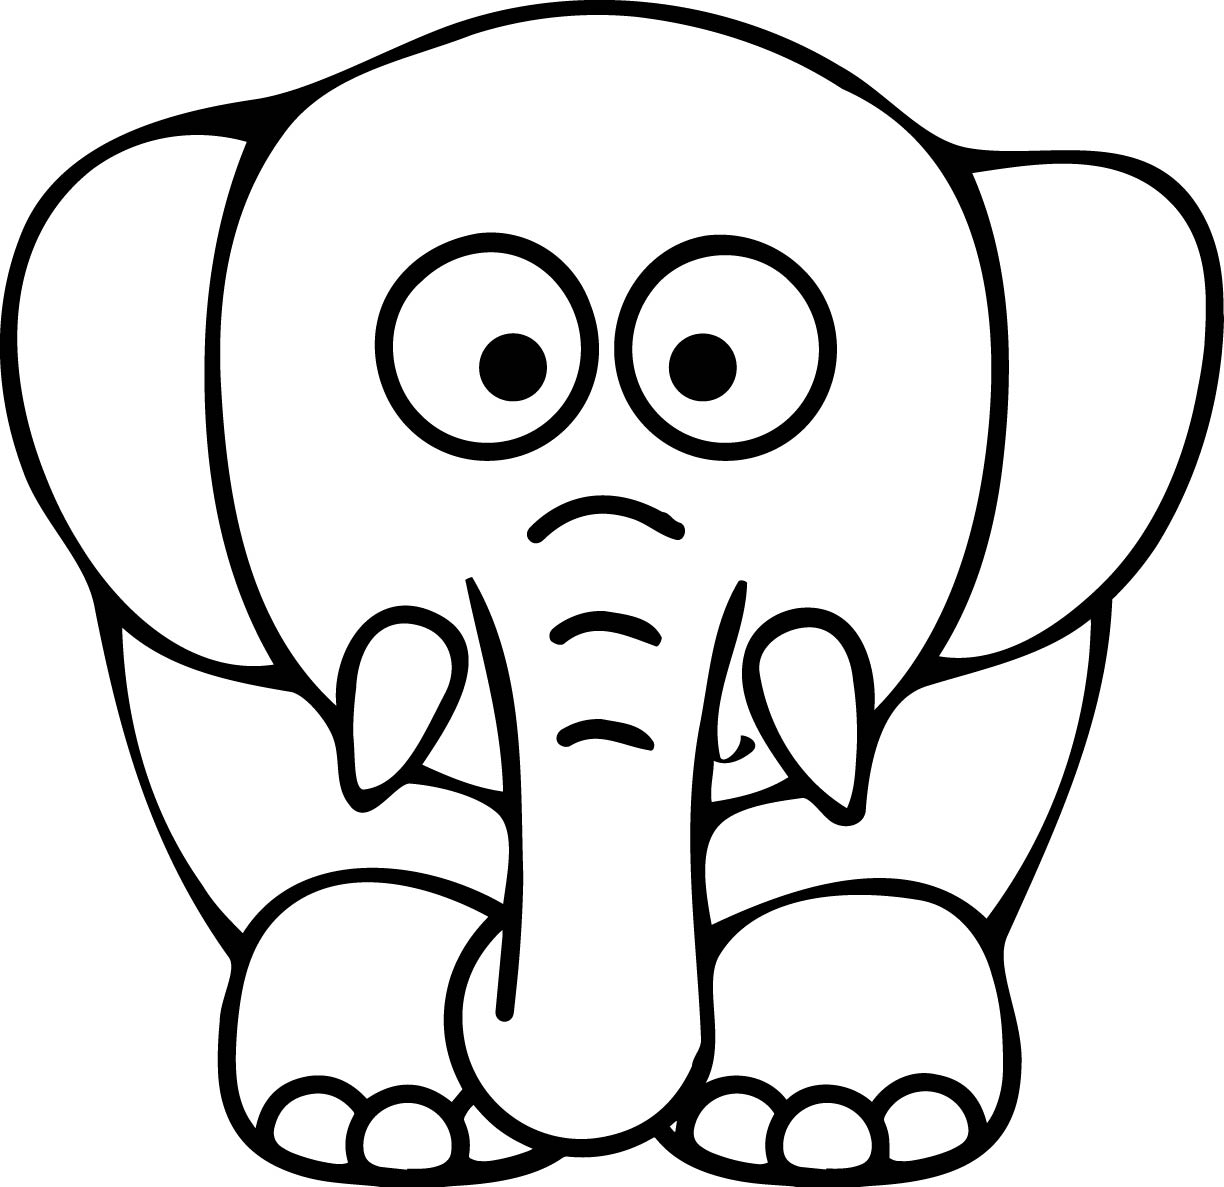 elephant images for colouring coloring elephants coloring pages elephants coloring elephant images colouring for